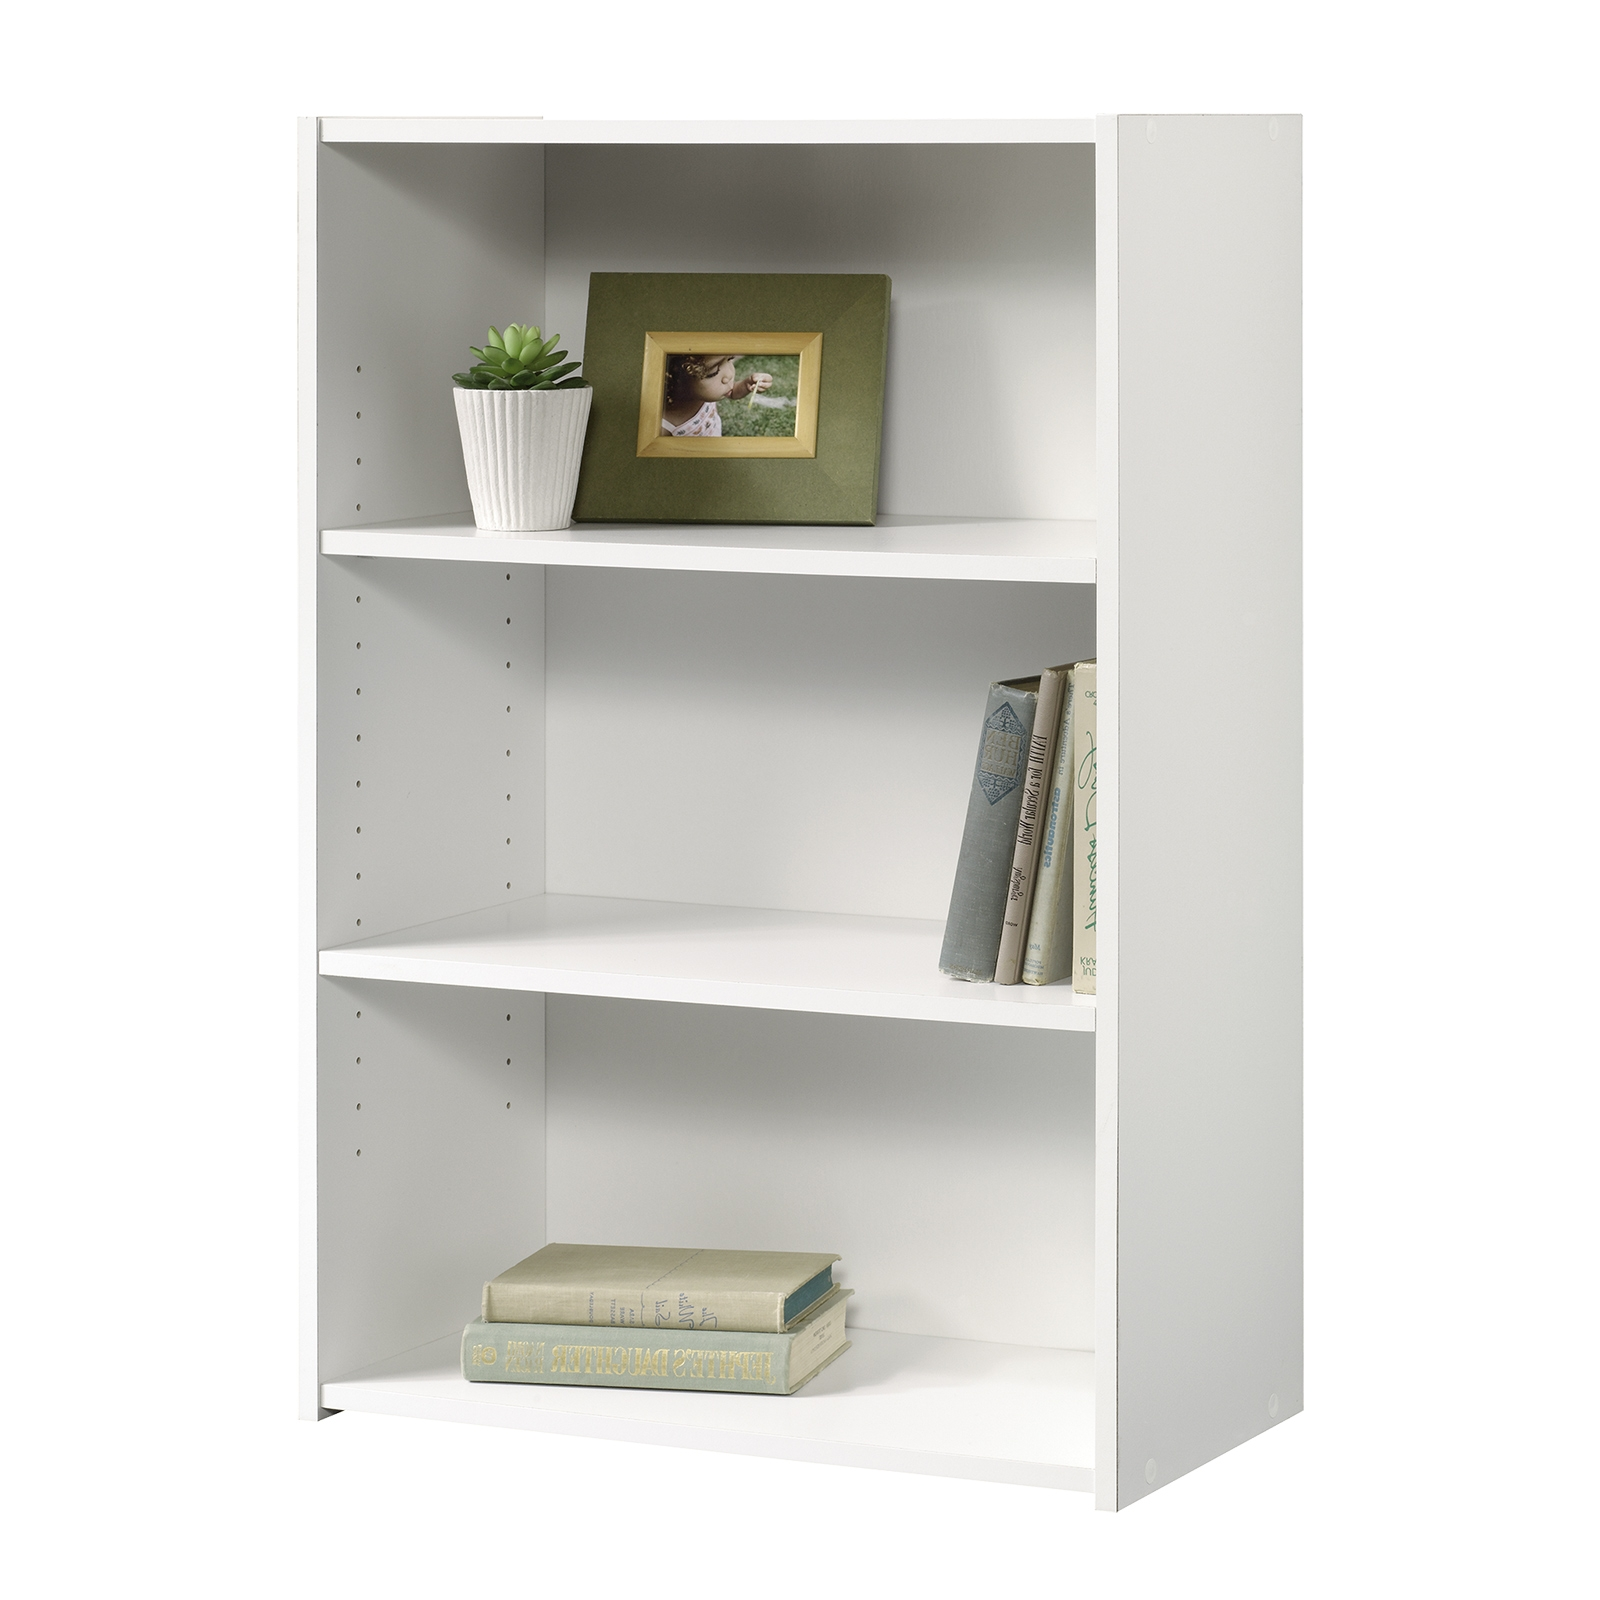 new bookcases for shelf furniture design bookshelf curved elegant bookcase target